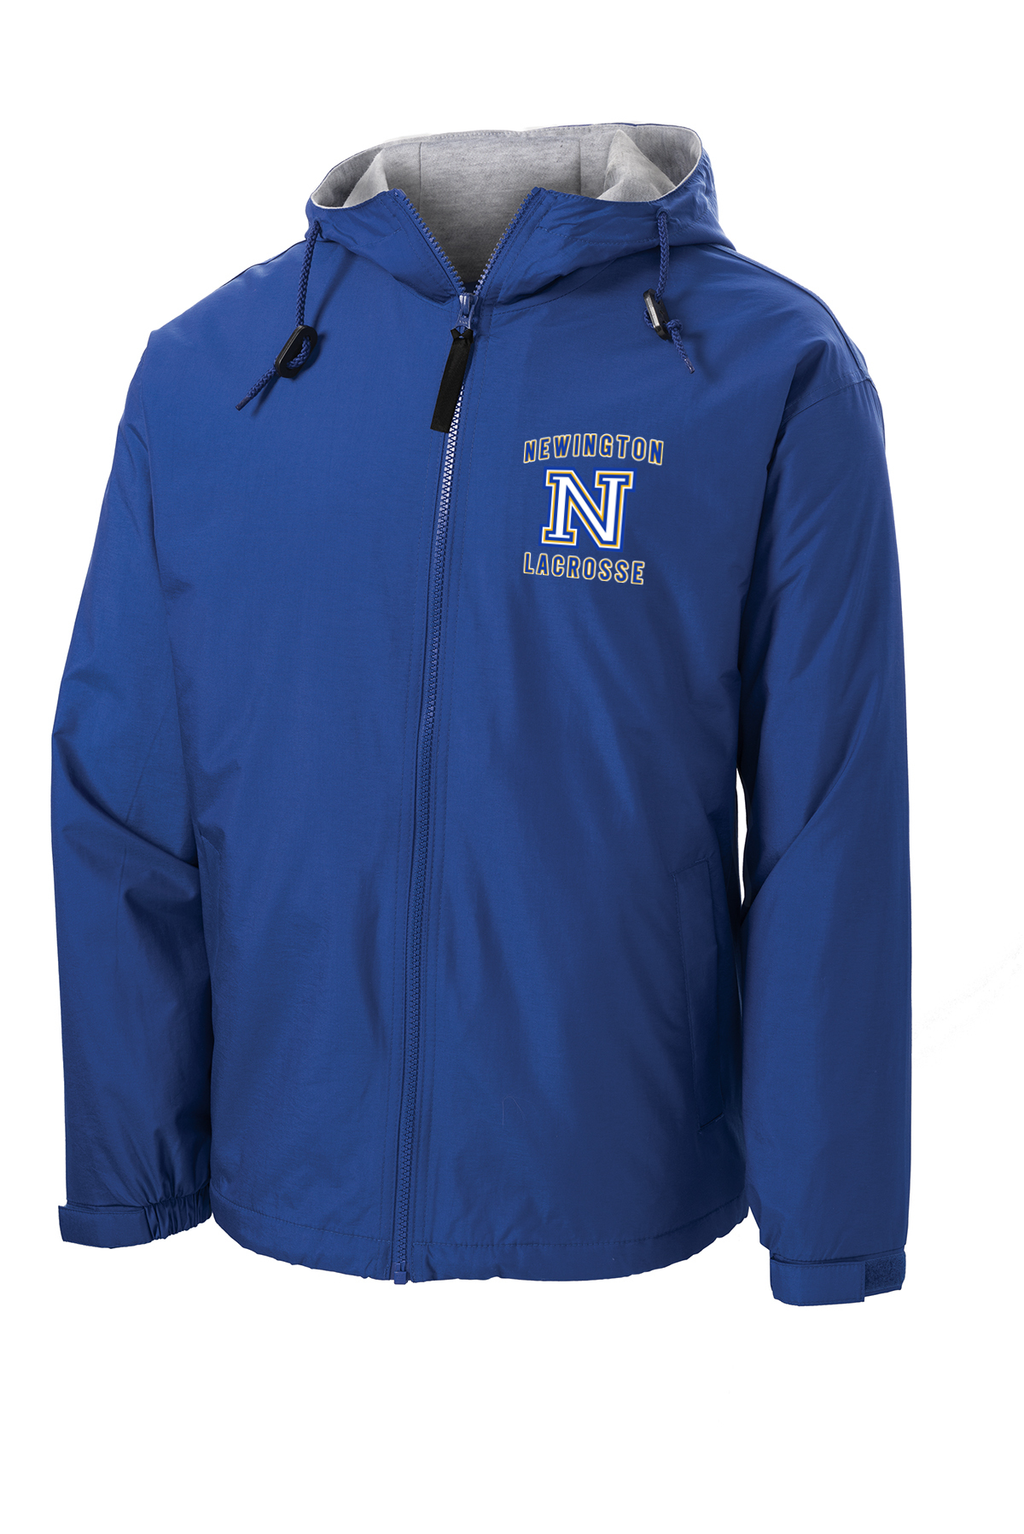 Newington Lacrosse Royal Hooded Jacket